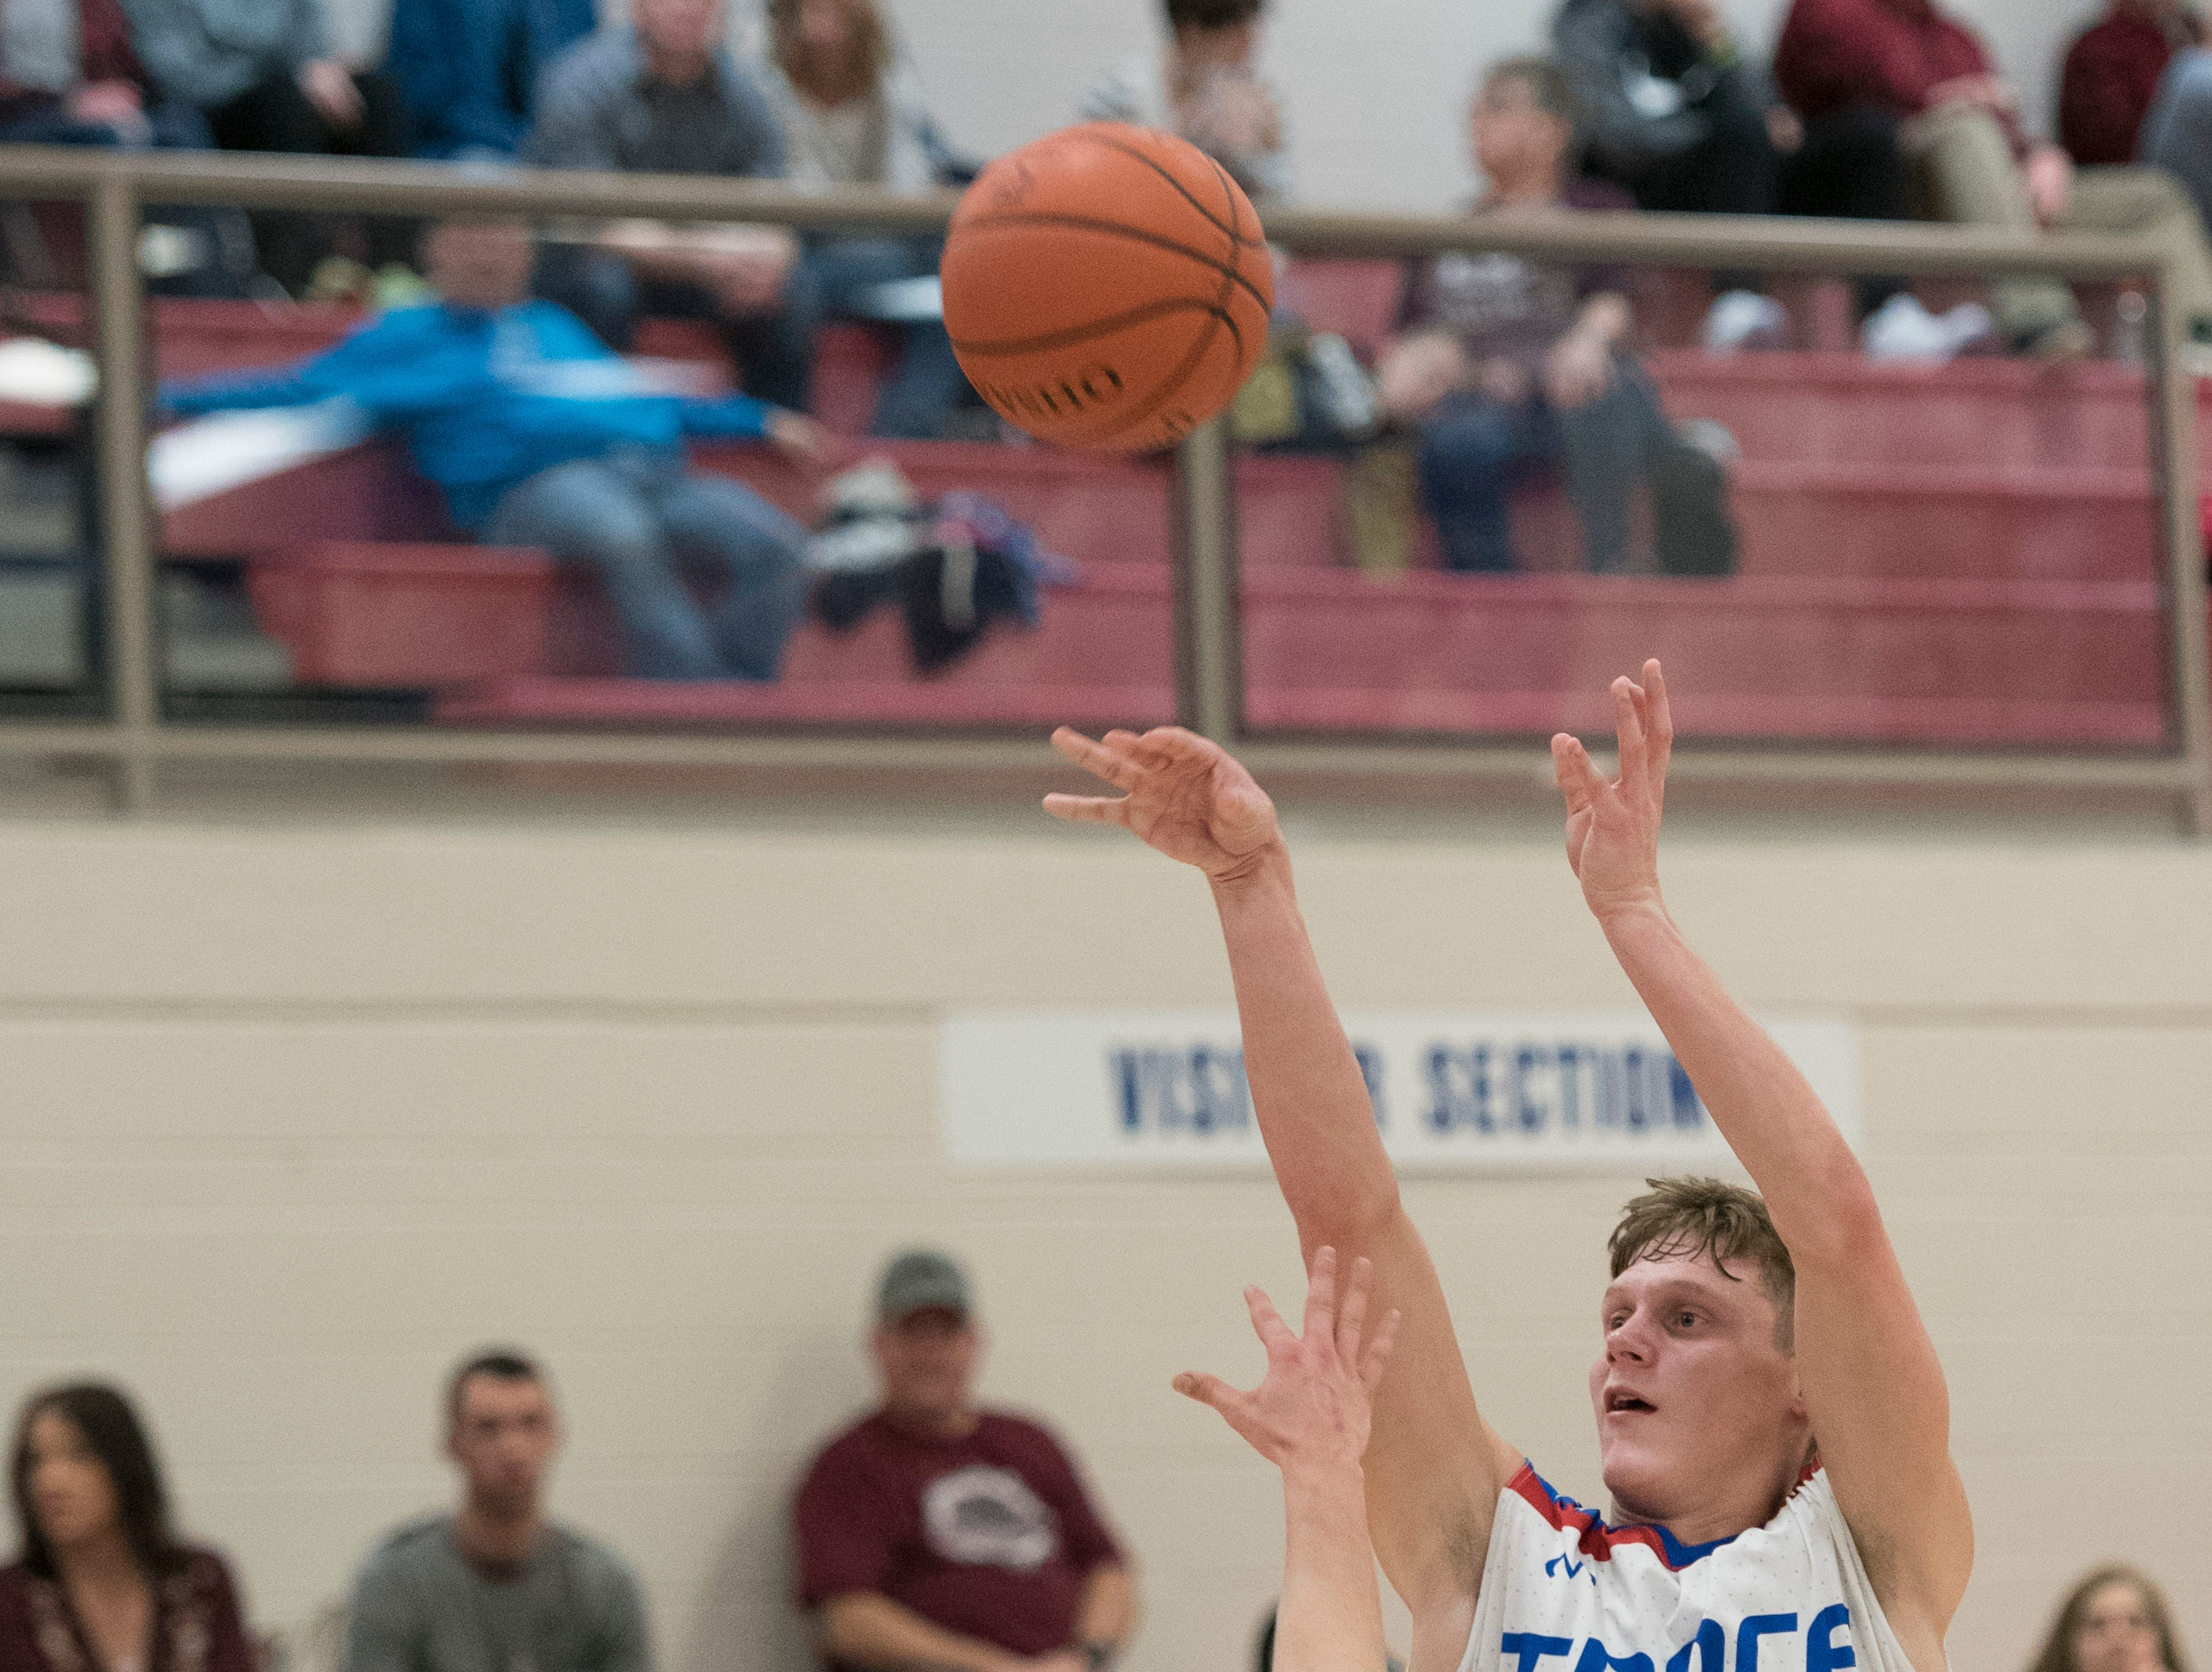 Zane Trace defeated Vinton County 65-52 Thursday night at Zane Trace High School.